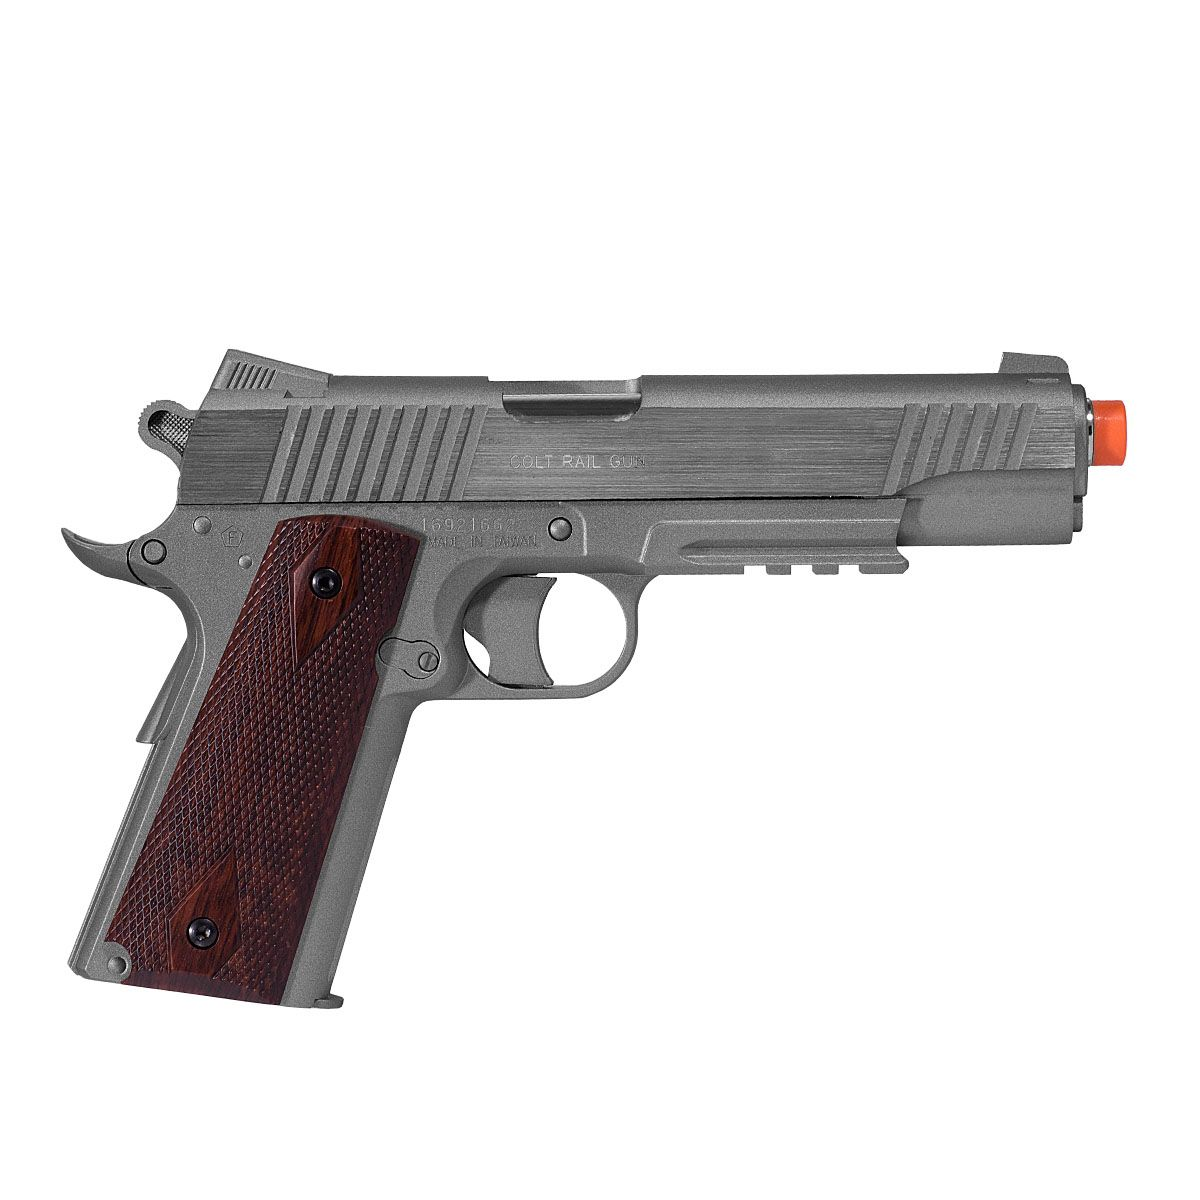 Pistola Airsoft Colt 1911 Rail Gun NBB / Slide Fixo Co2 - Cybergun